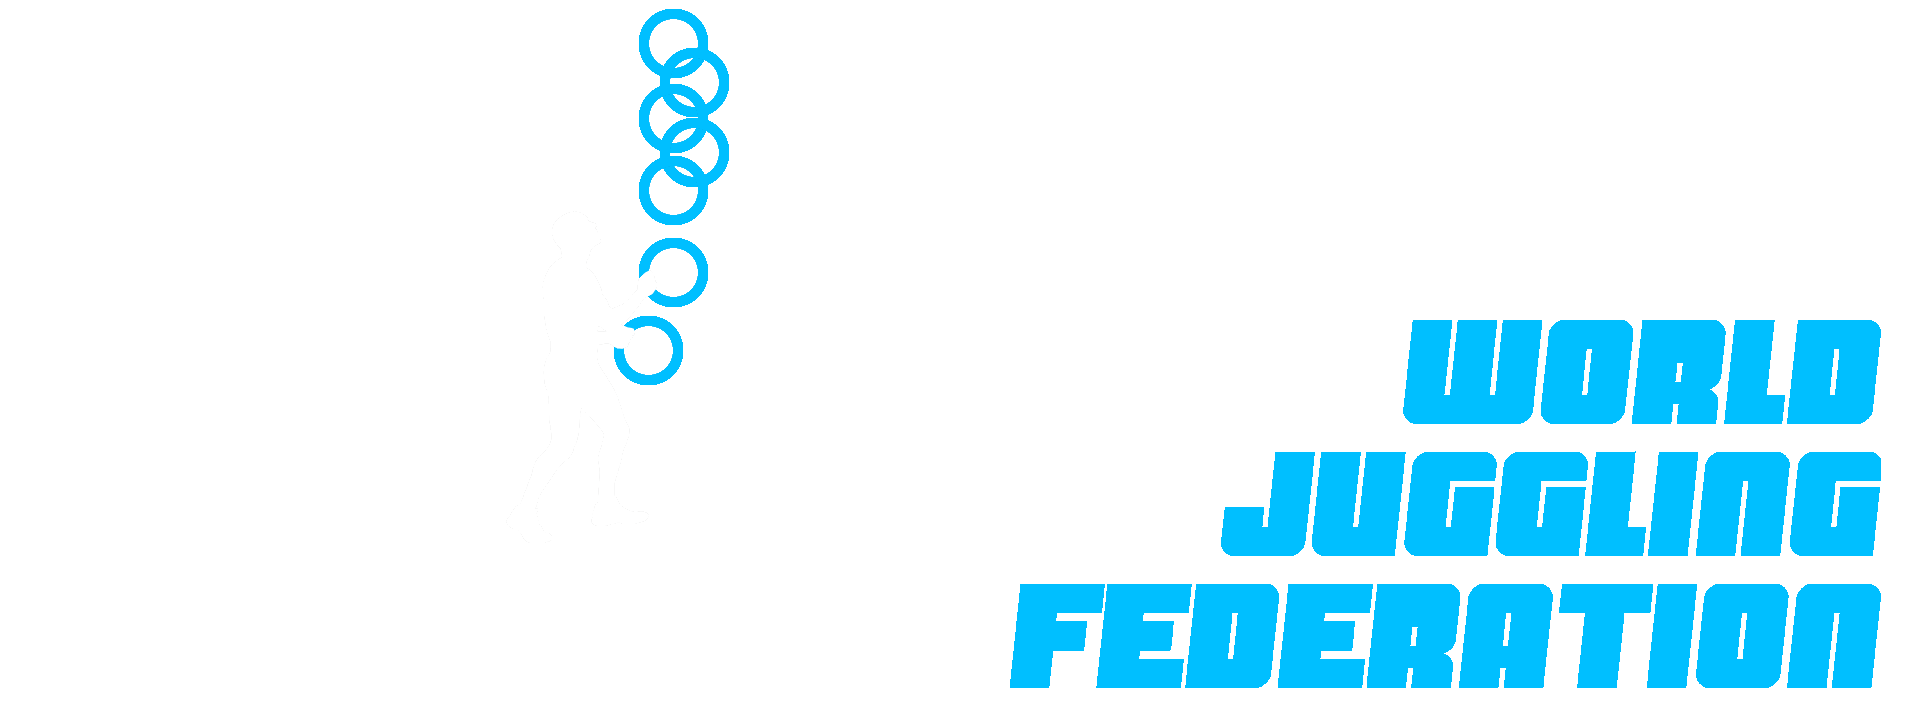 The World Juggling Federation